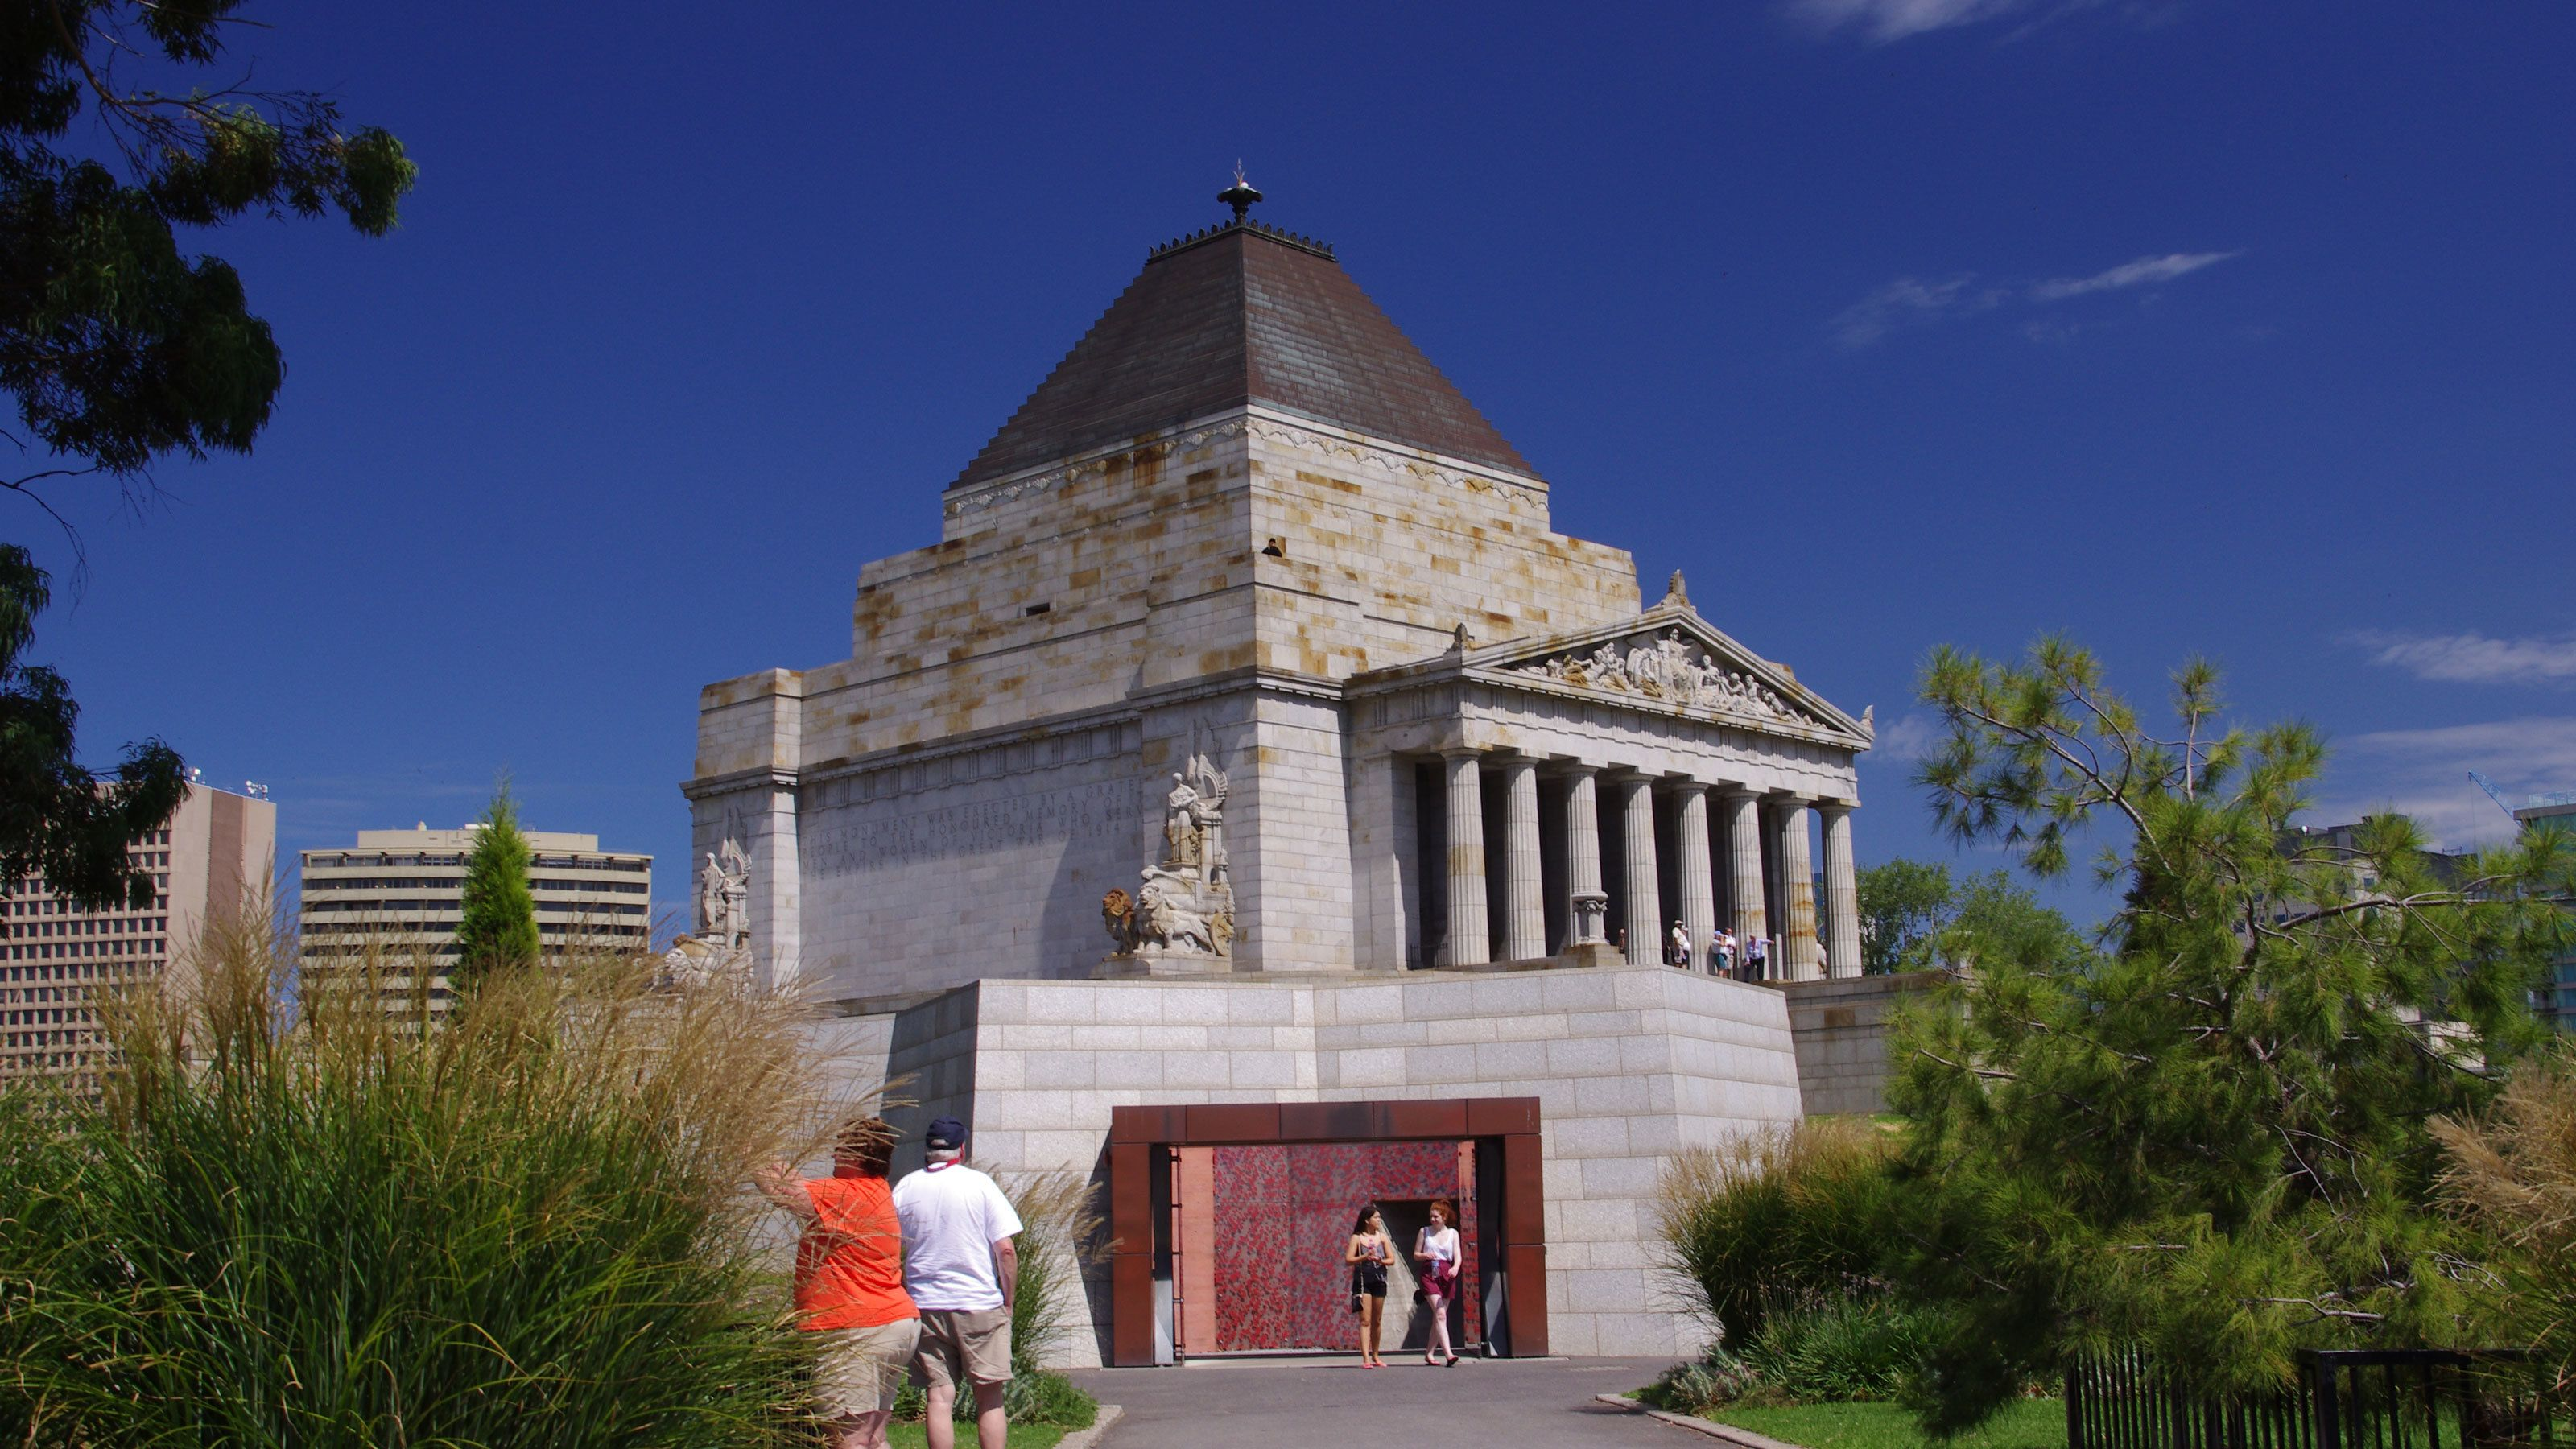 Side view of the columned stone building of the Shrine of Remembrance in Melbourne